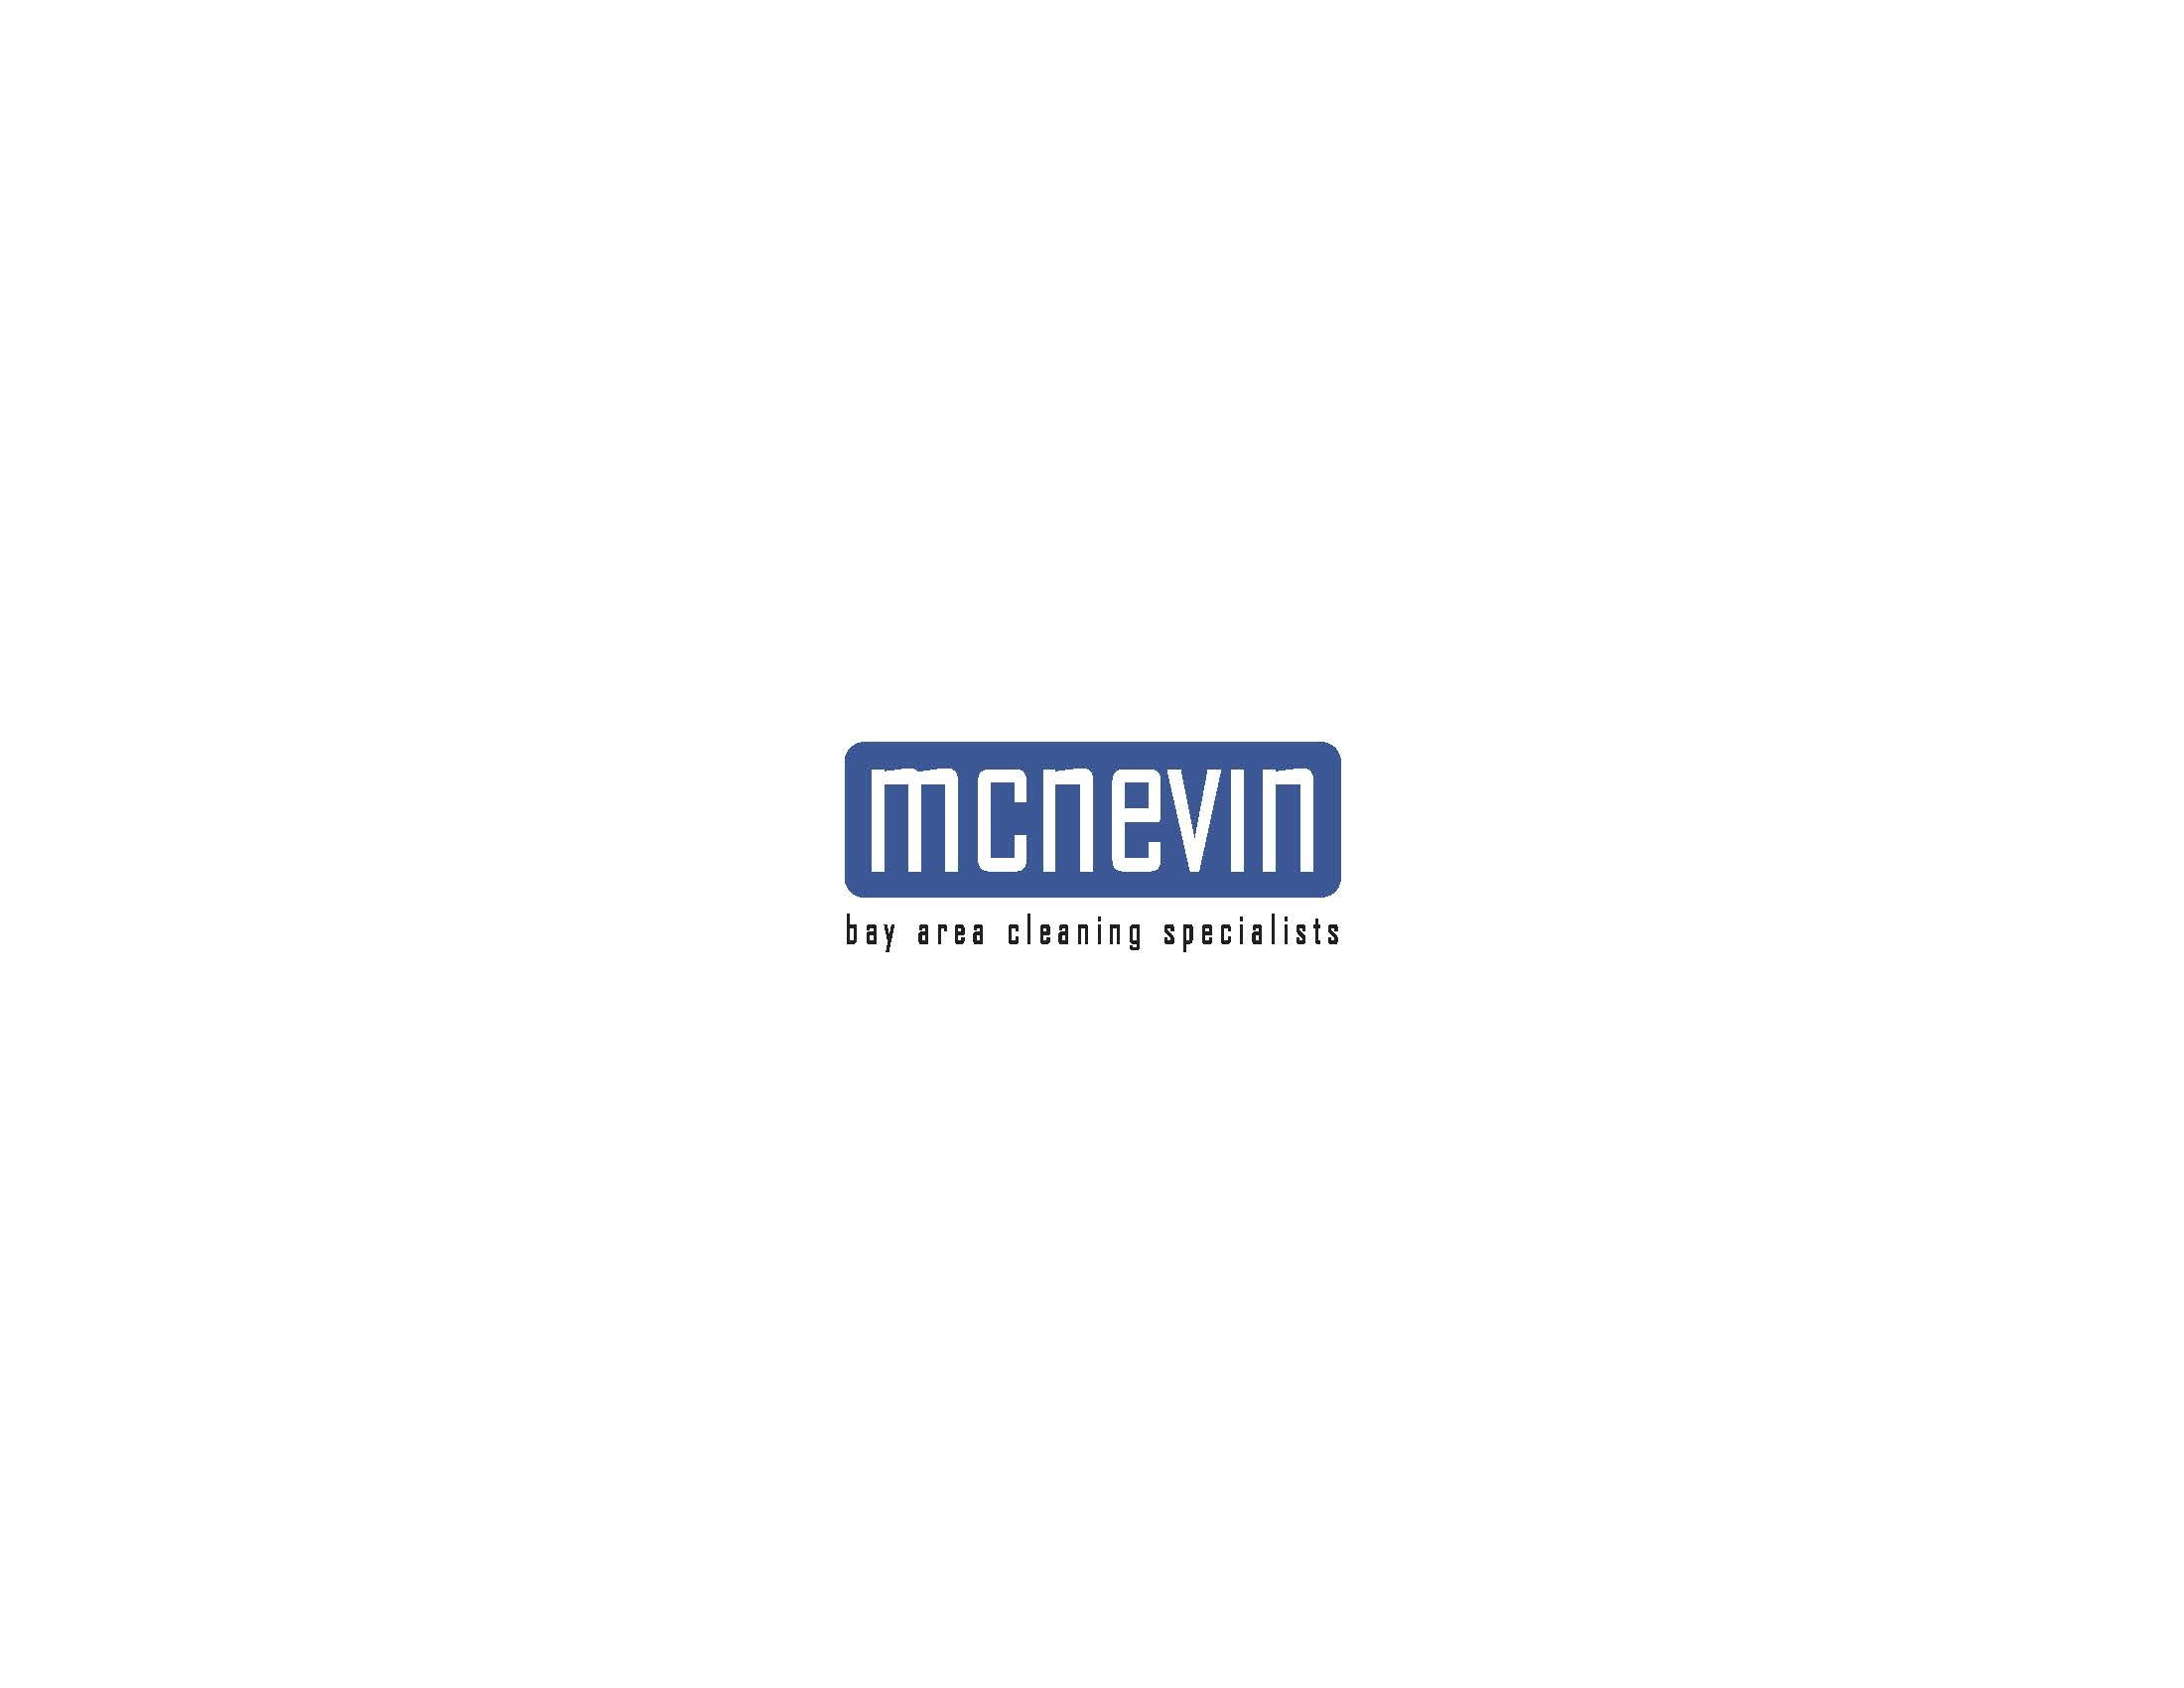 mcnevin - bay area cleaning specialists